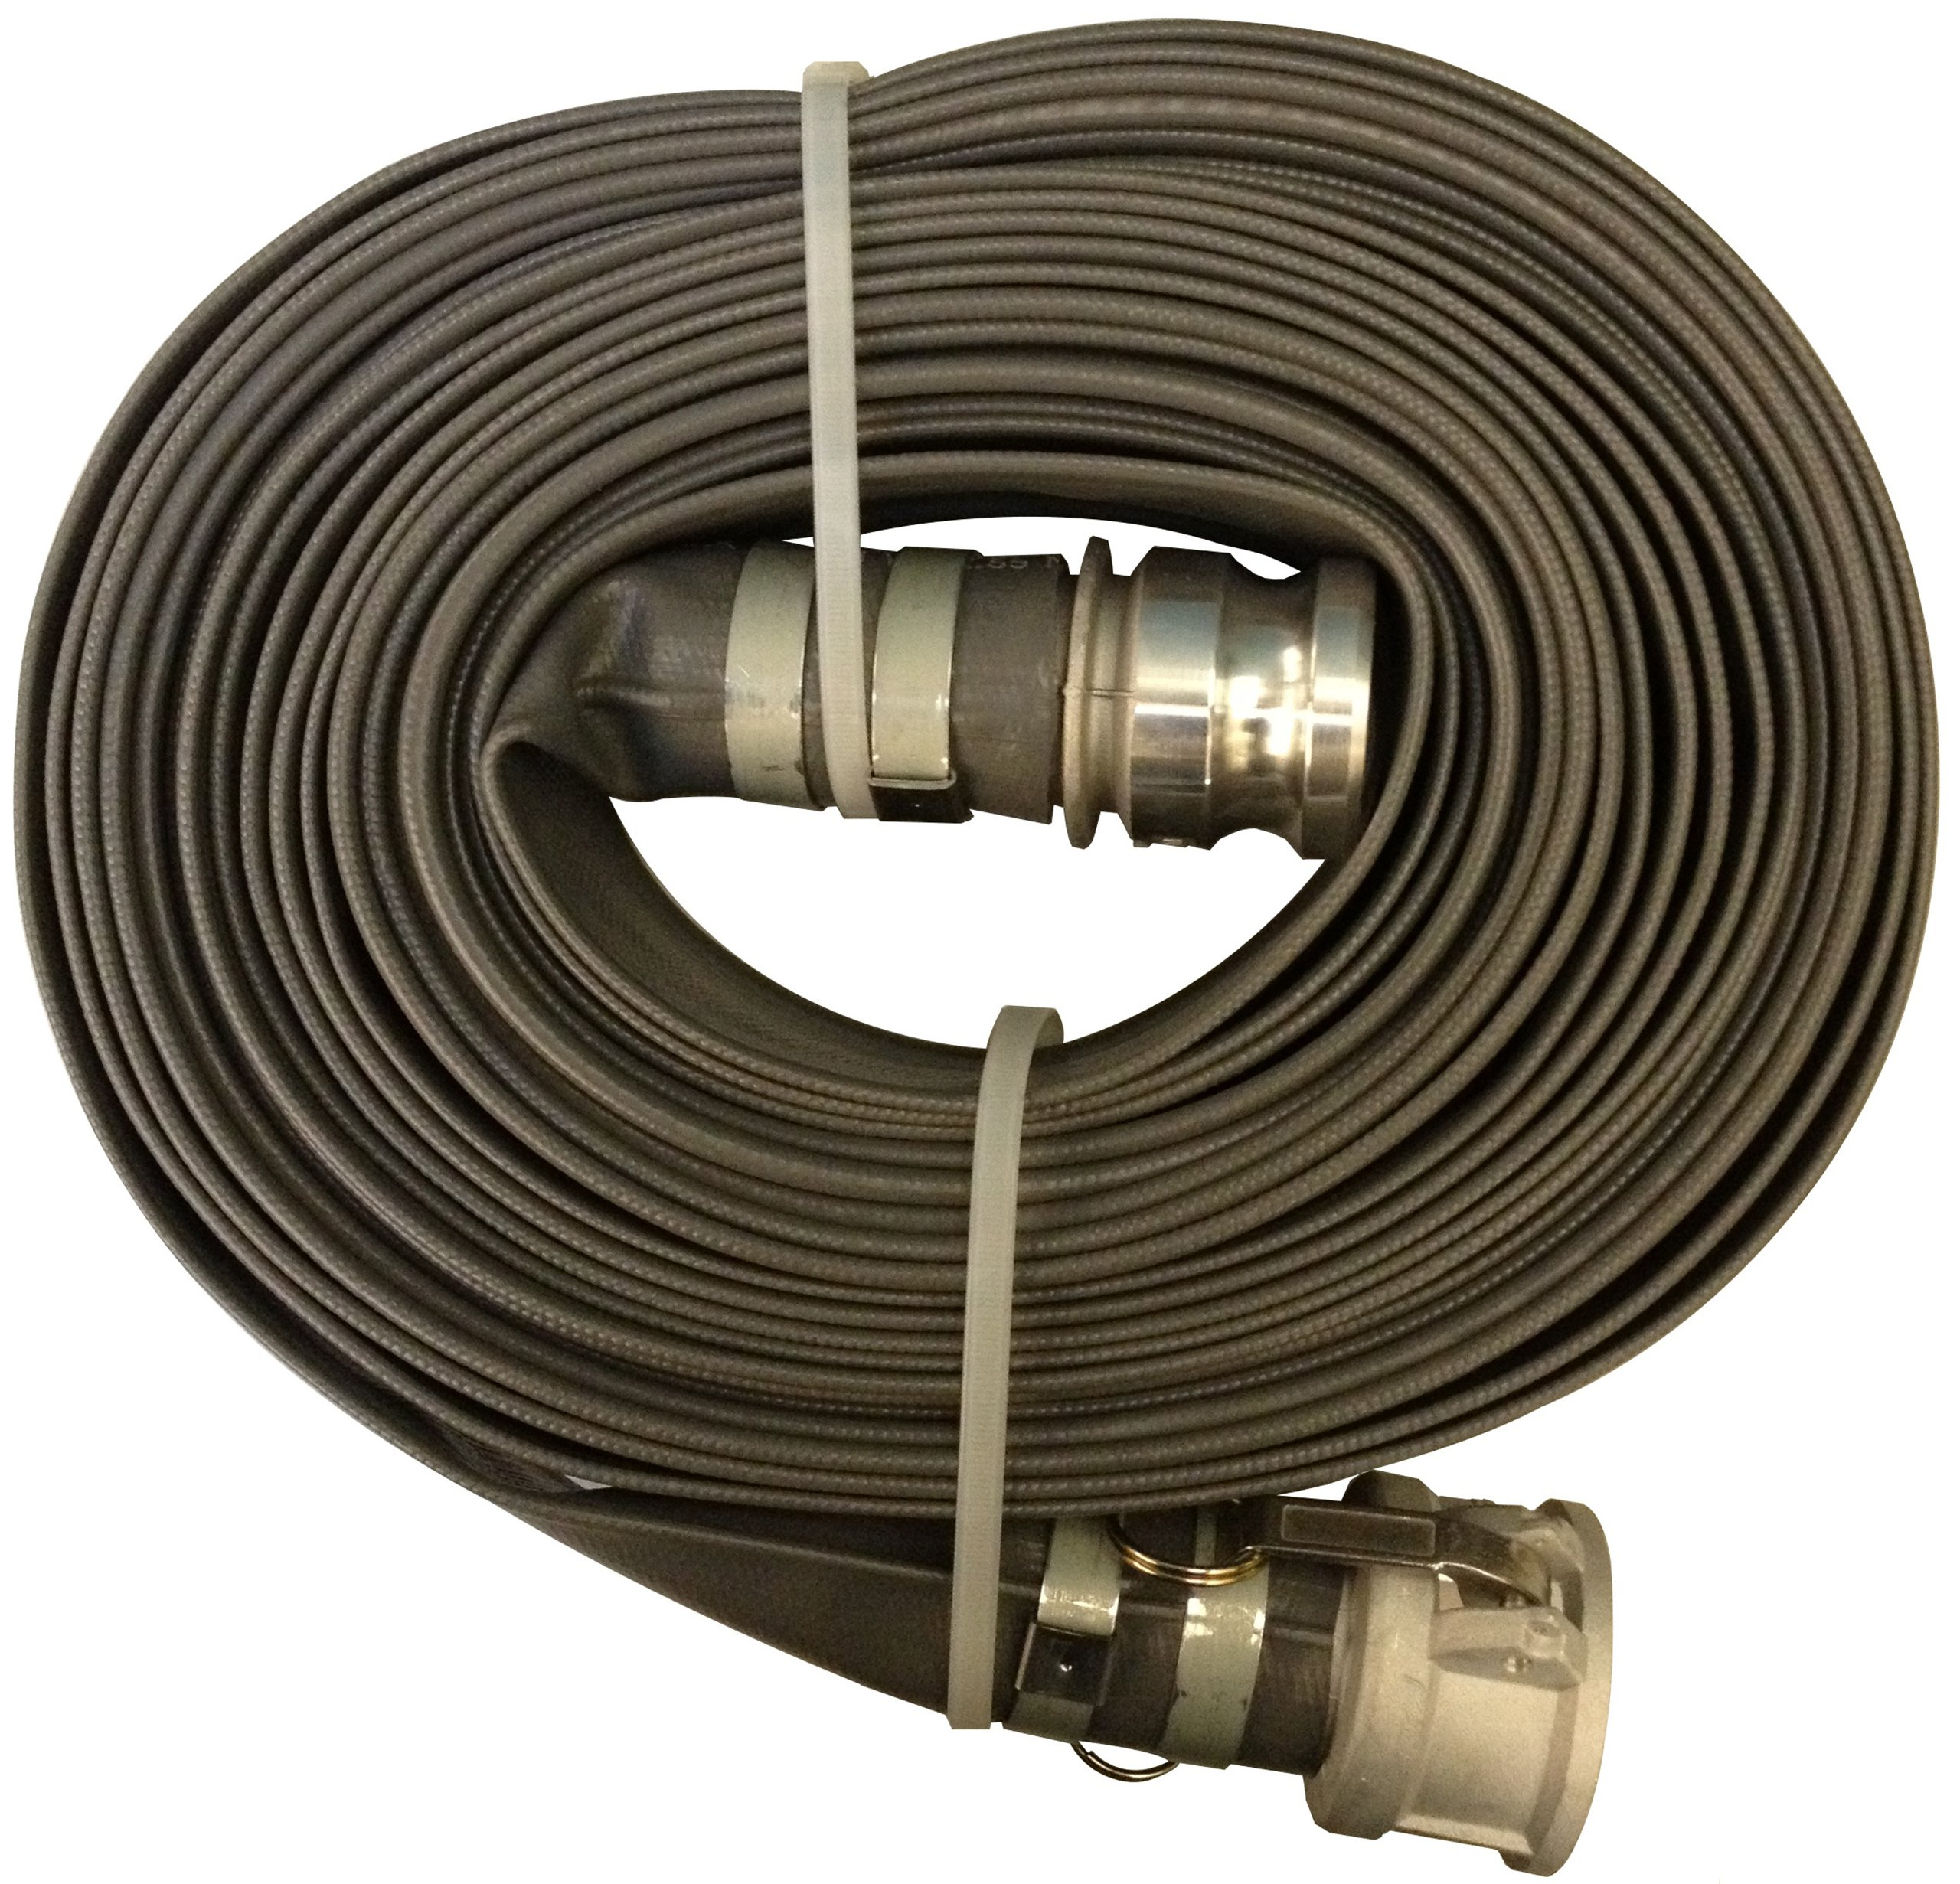 Goodyear EP Spiraflex Pliovic Compound Discharge Hose Assembly, Gray, 2'' Male X Female (CXE) Camlocks, 80 PSI Maximum Pressure, 2'' Hose ID, 50' Length by Goodyear Engineered Products